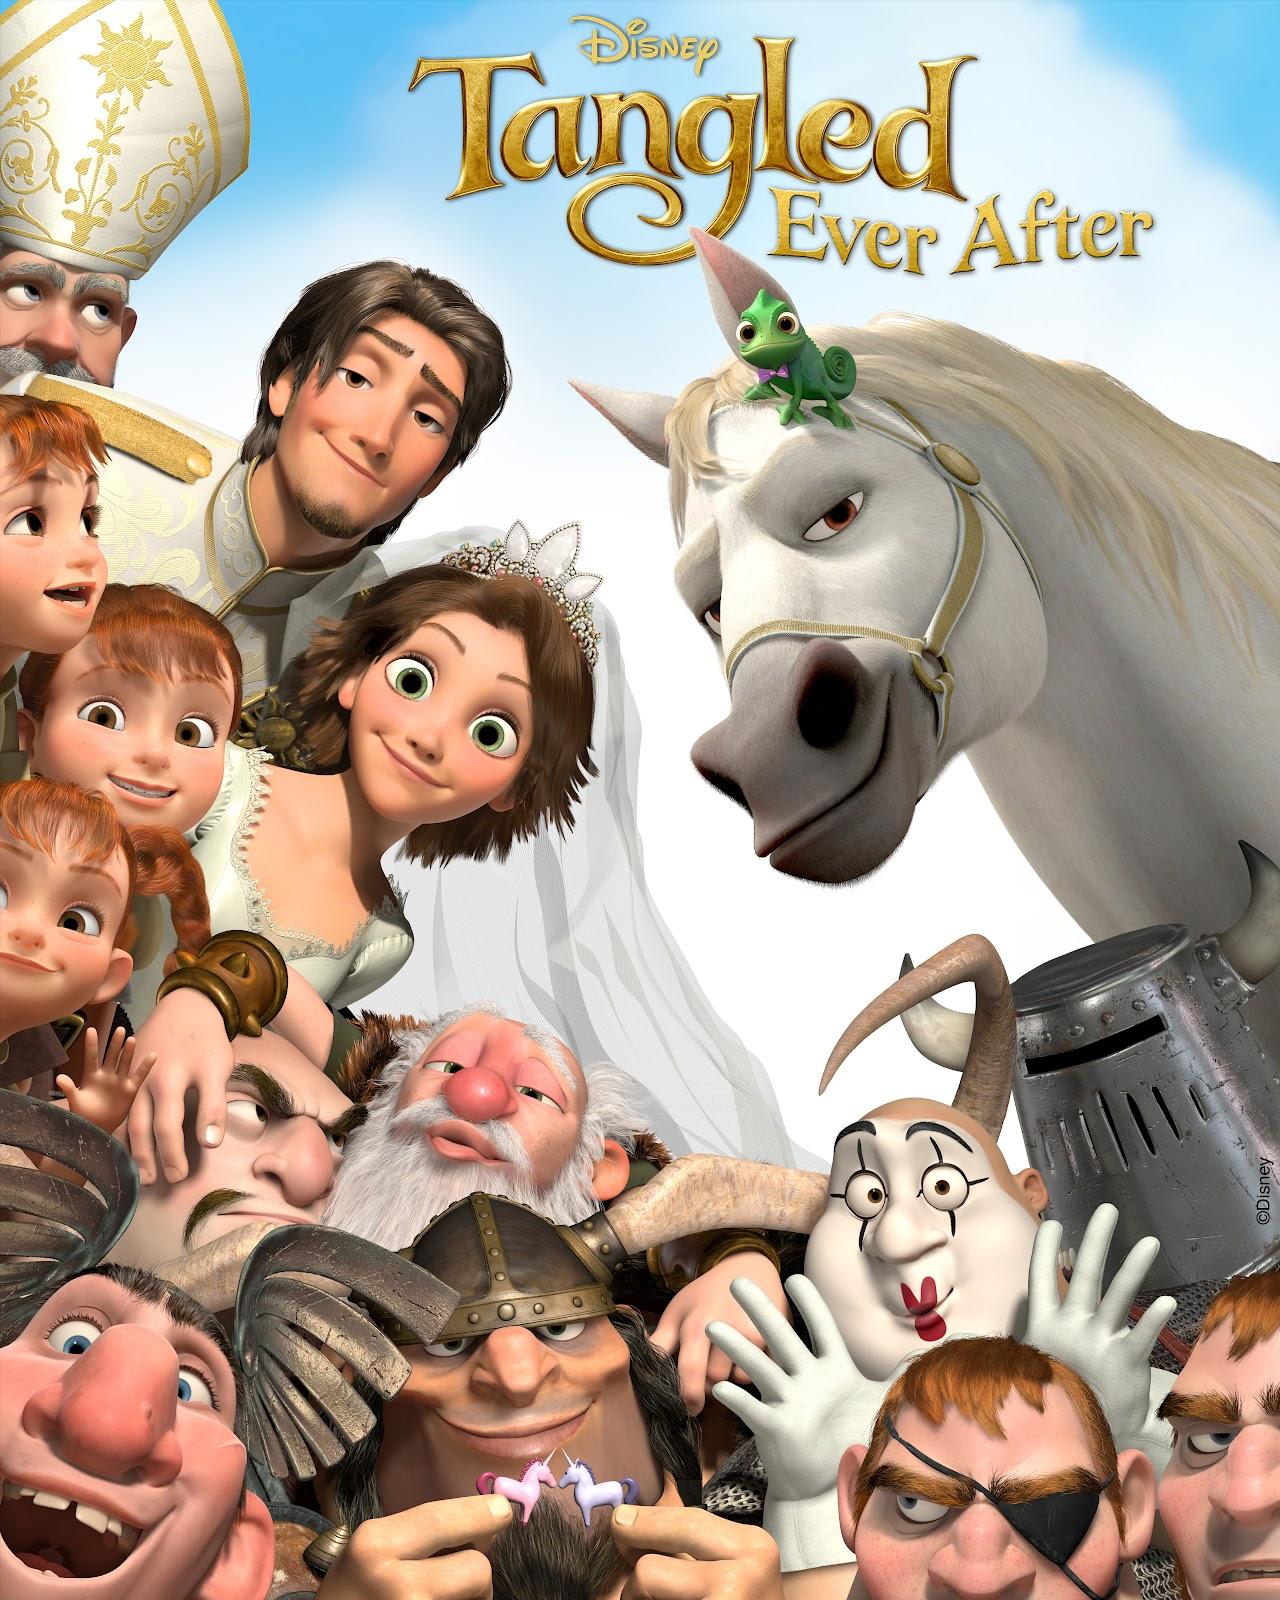 http://4.bp.blogspot.com/-9NRukgftykM/T9m8rWvzKwI/AAAAAAAADOo/WVgZnRZb_7U/s1600/tangled-ever-after-movie-poster.jpg